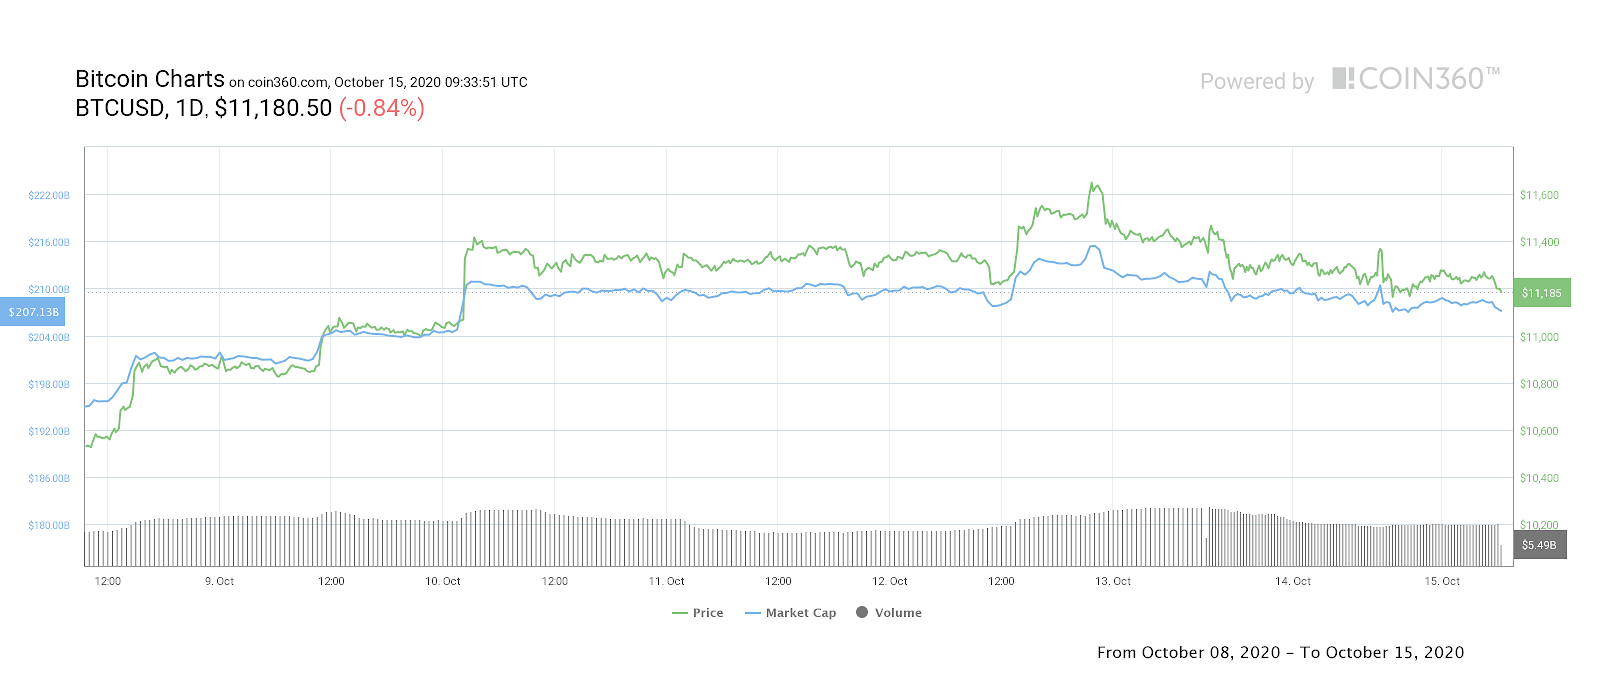 BTC/USD 1-week daily price chart